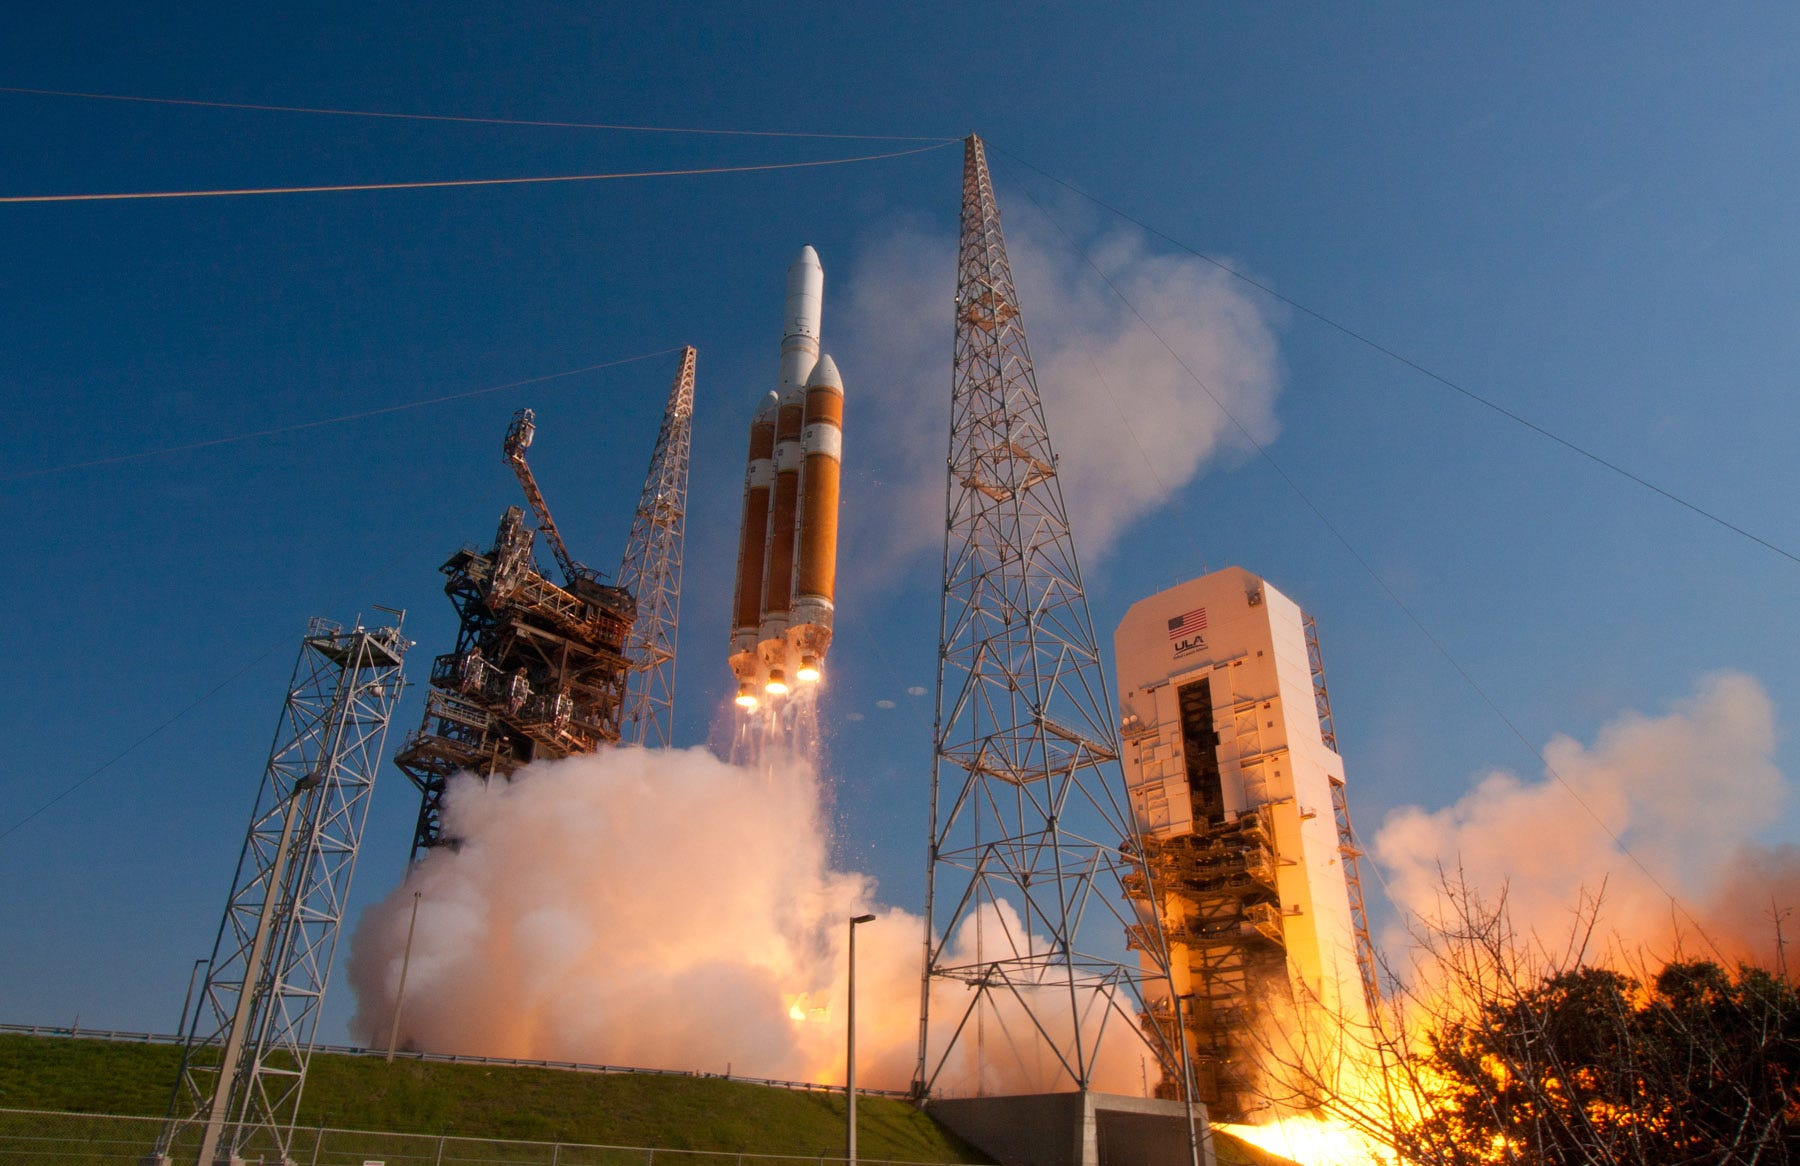 efb315c7-a6fd-4869-9431-581b706e6edf-40861906202_da57400c50_o How to watch tonight's Delta IV Heavy launch from Cape Canaveral with NASA solar probe